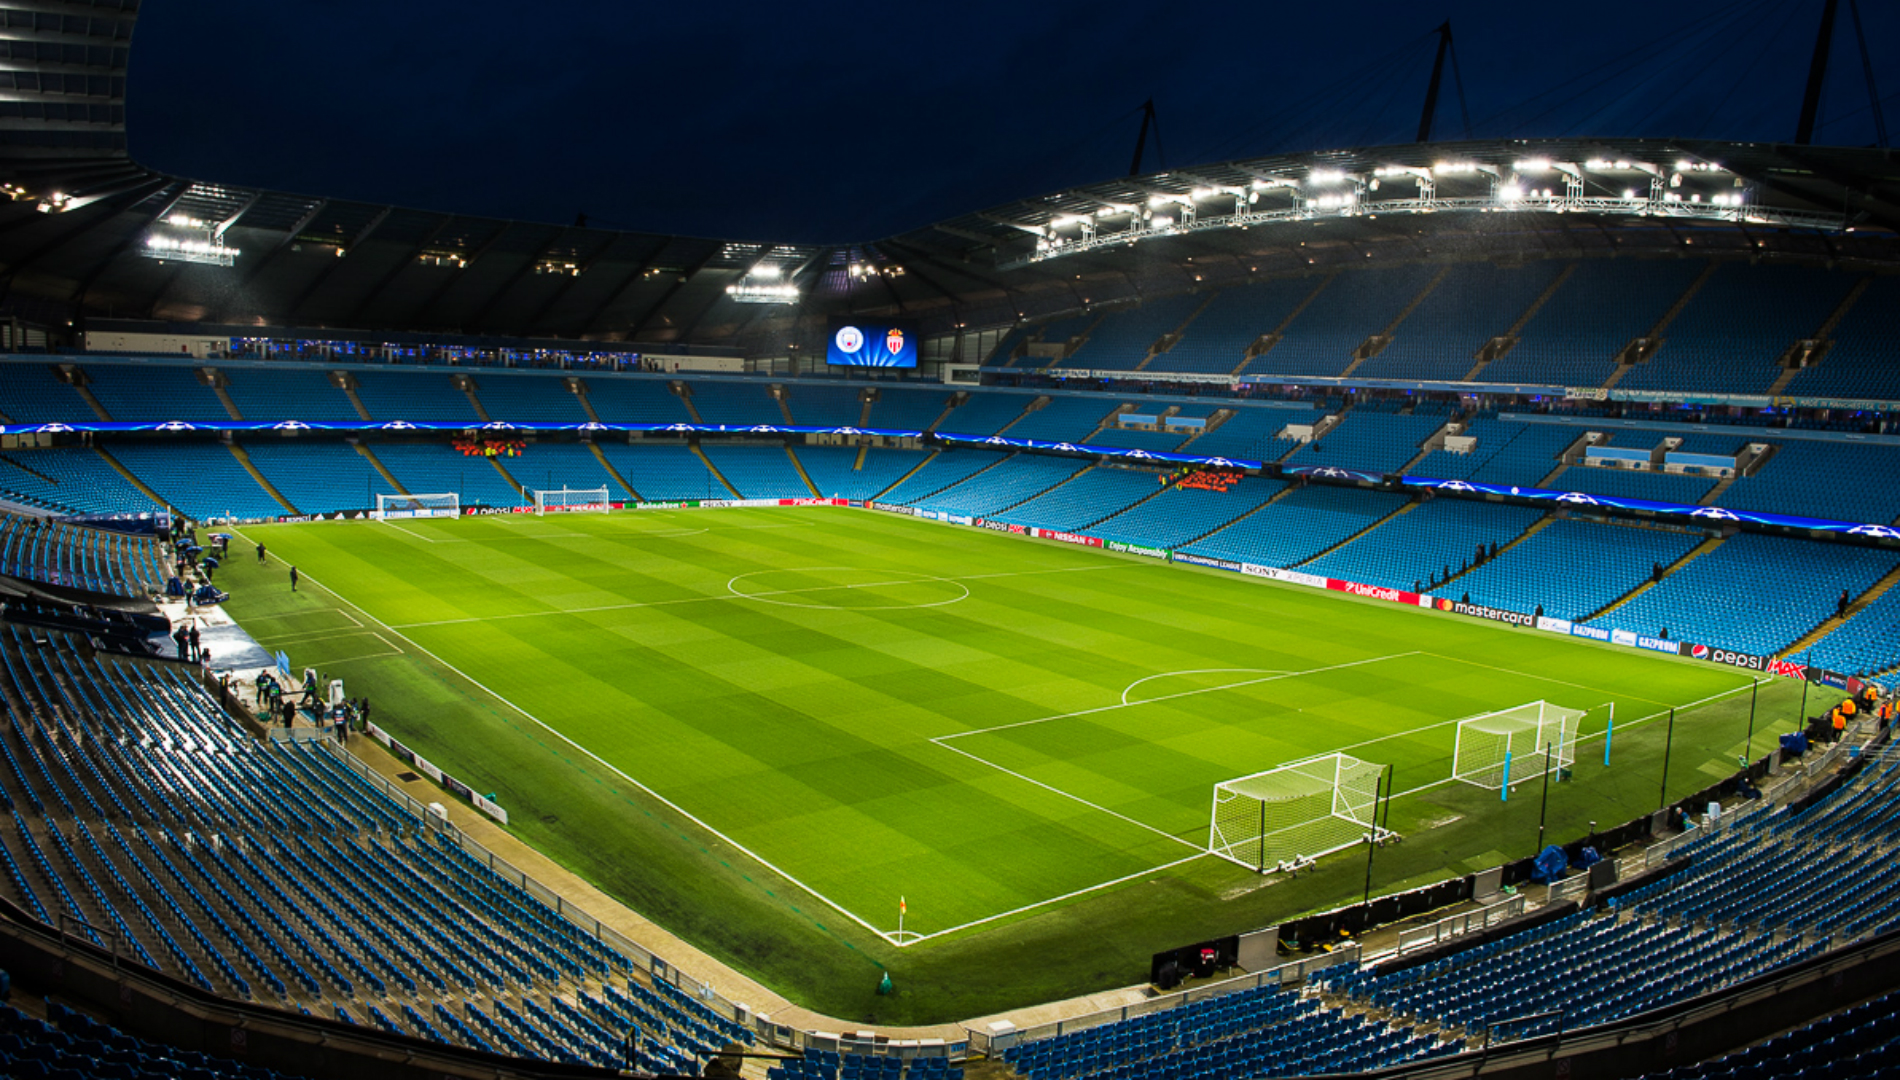 etihad stadium - photo #13